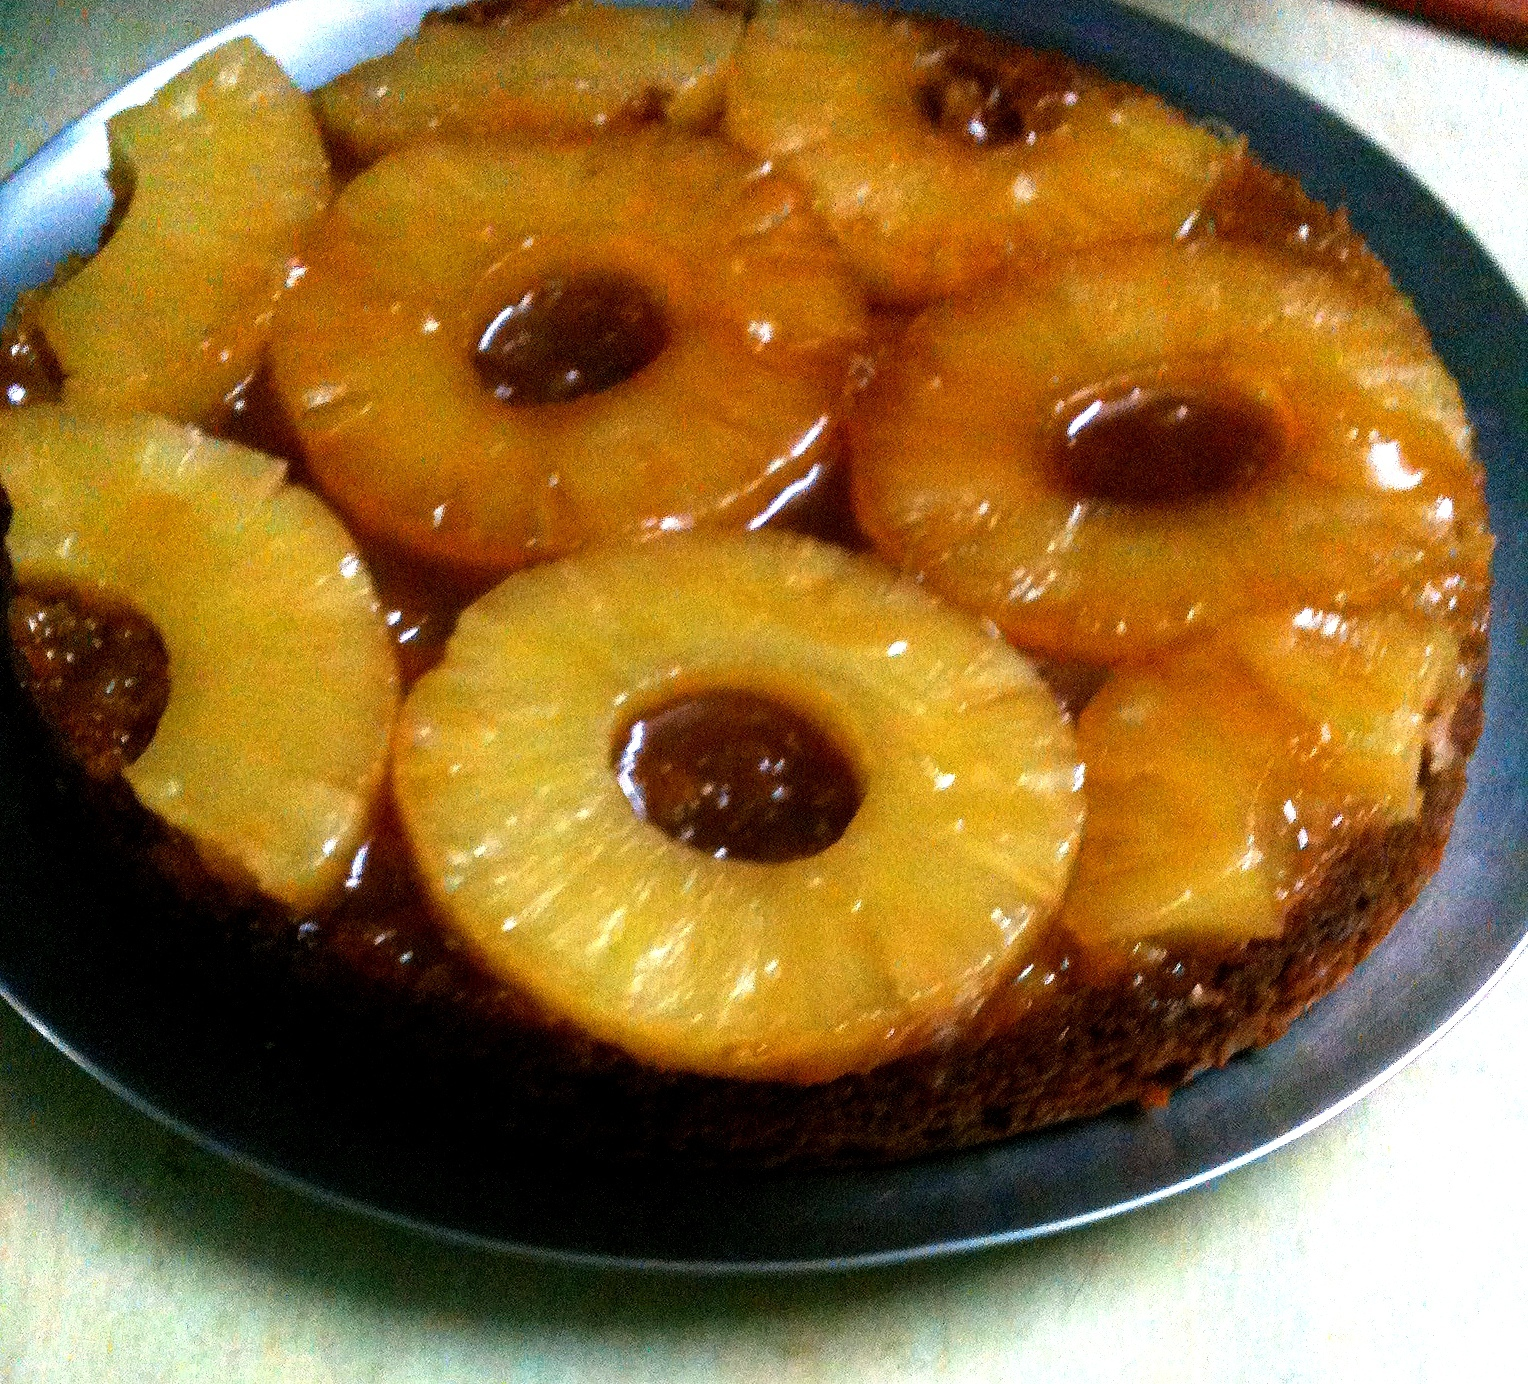 Eggless upside down Pineapple Cake (Pressure Cooker Style)